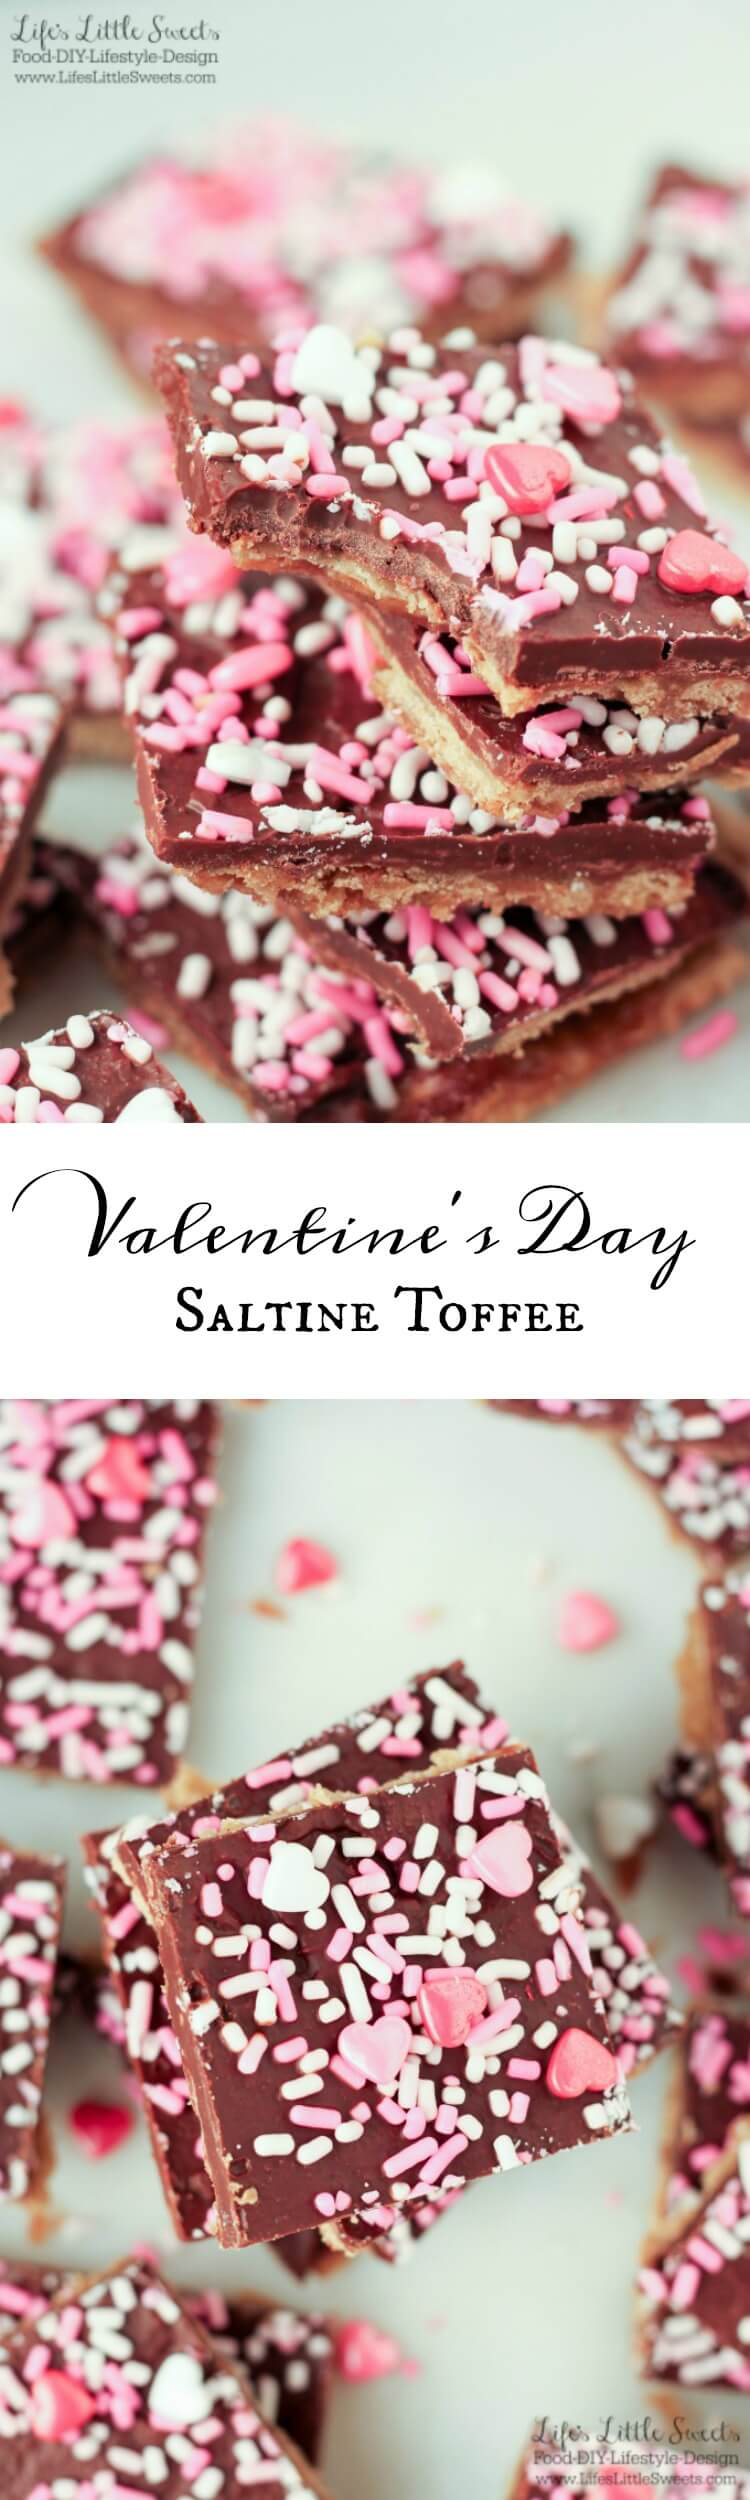 Valentine's Day Saltine Toffee is an easy to make, addictive, salty-sweet, candy snack. Make it for Valentine's Day gift giving for that special someone or for your next gathering! #ValentinesDay #dessert #snack #sweet #sprinkles #pink #saltines #crackers #toffee #candy #homemade